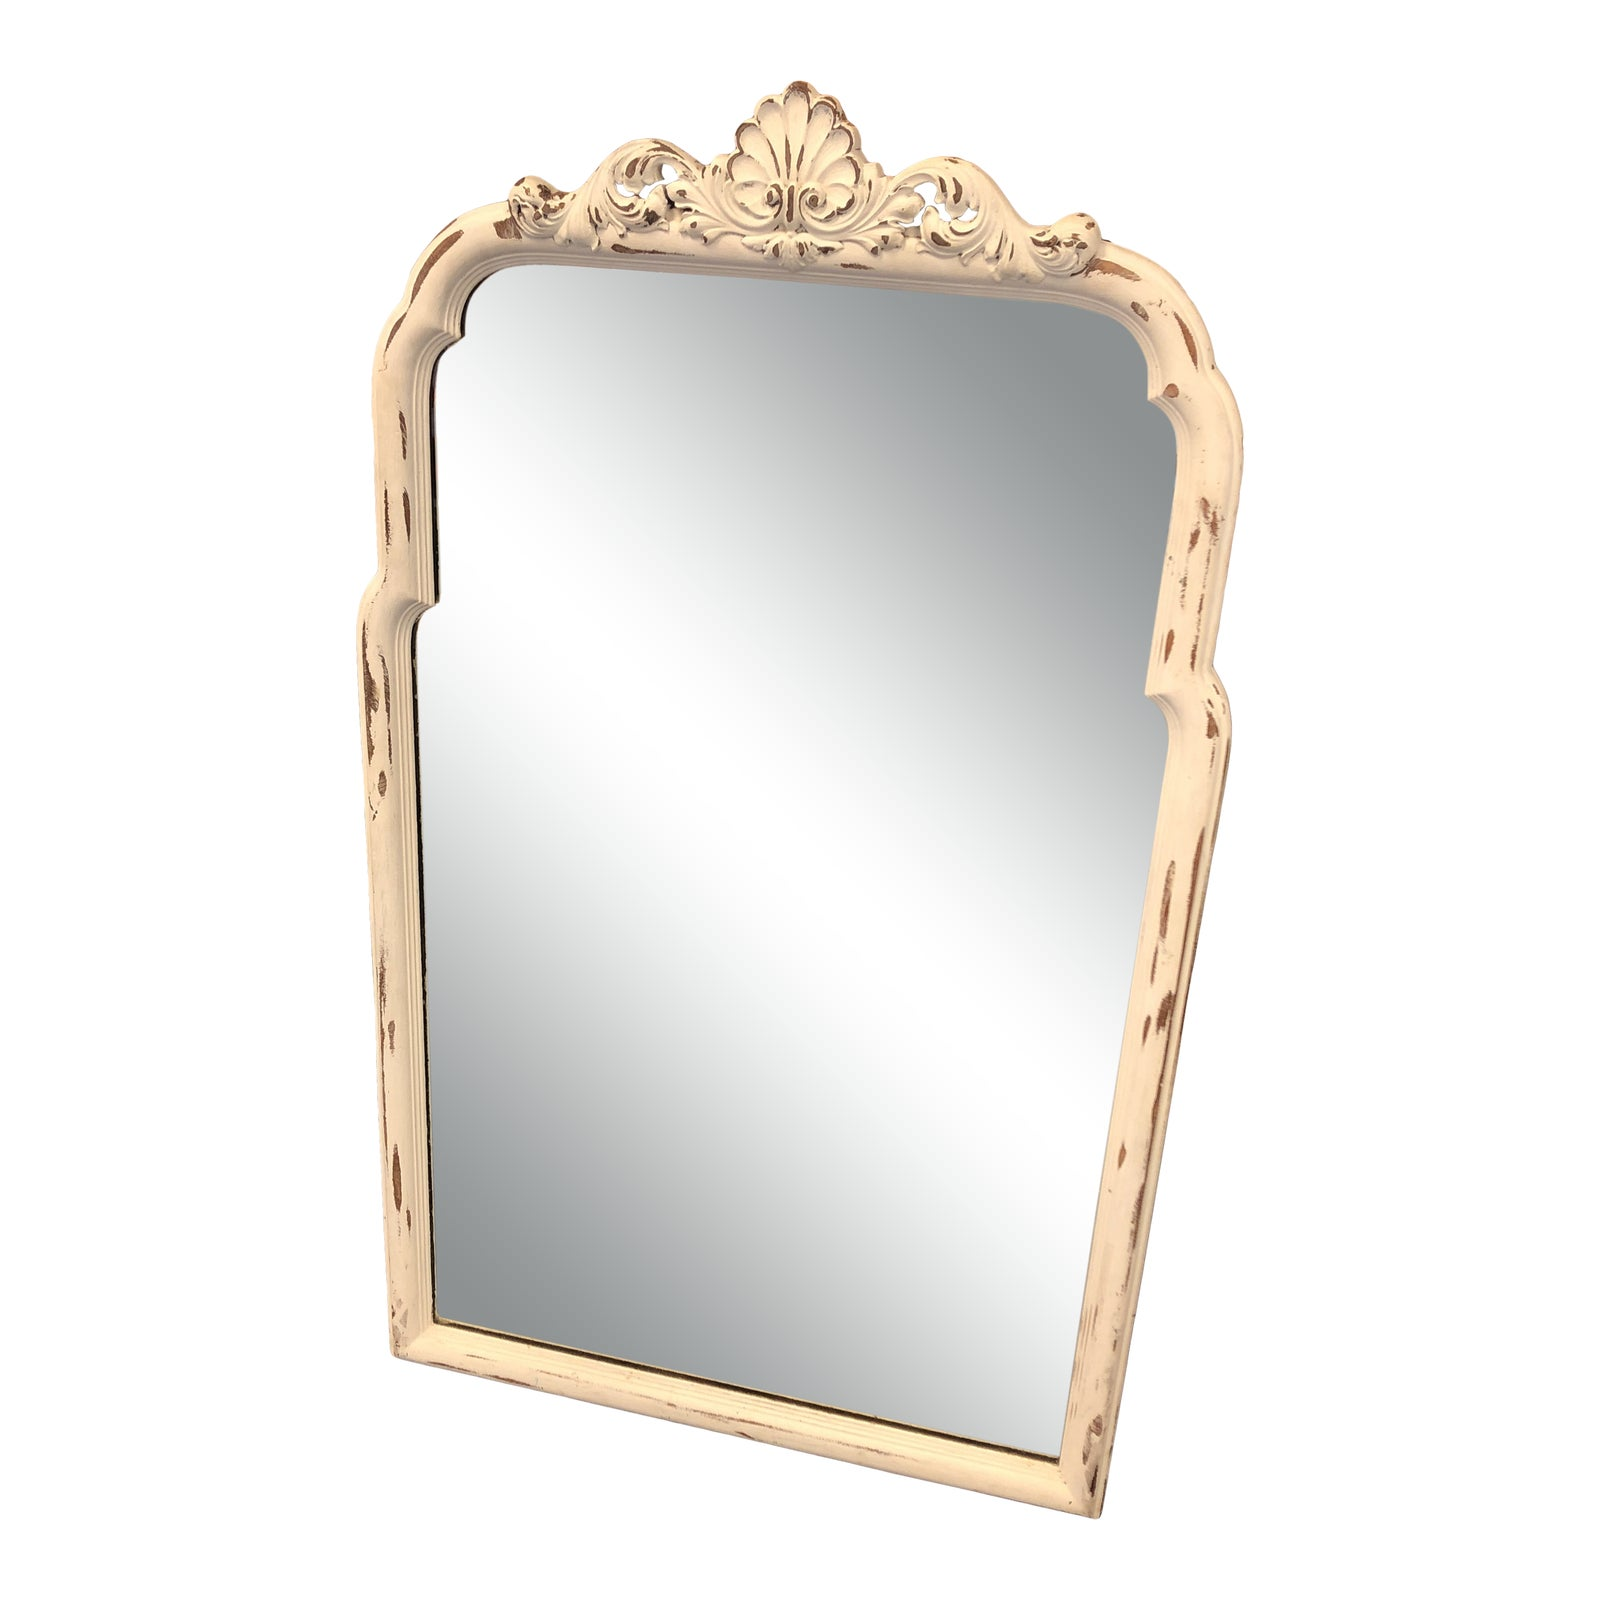 1930s Vintage Wall Mirror Chairish